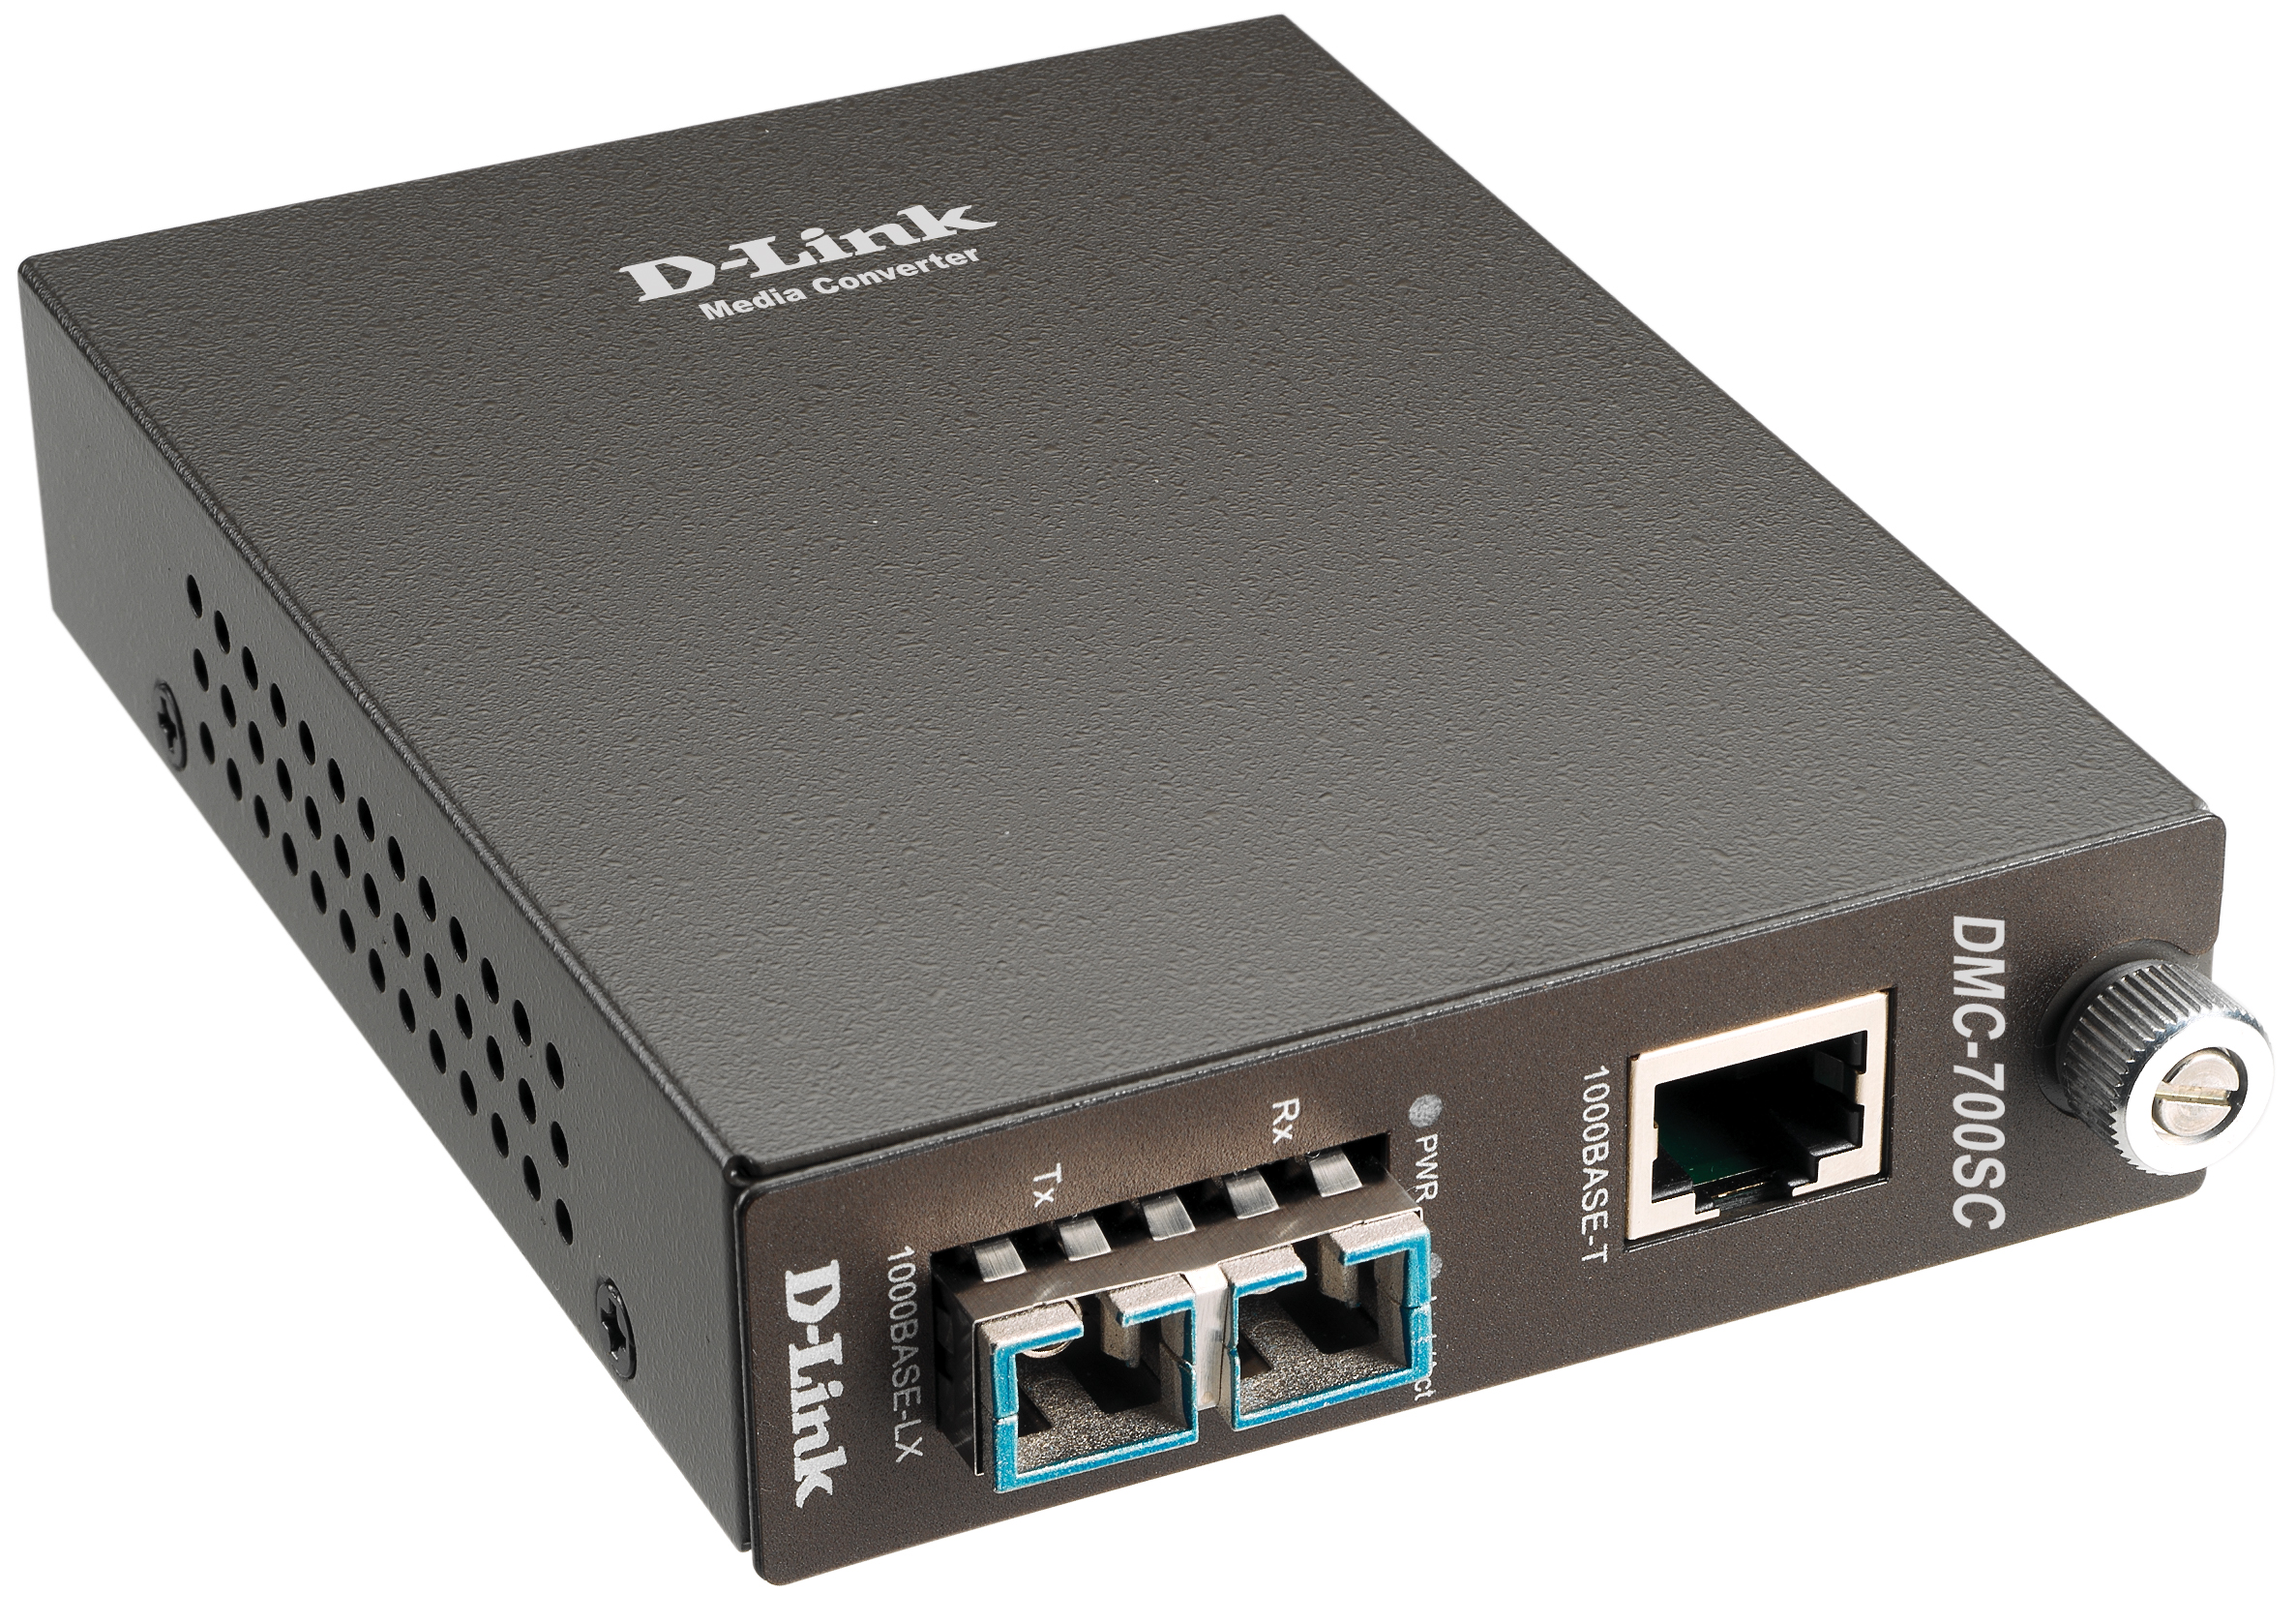 D-Link DMC-515SC/D6B, Fast Ethernet Twisted-pair to Fast Ethernet Single-mode Fiber (15km, SC) Media Converter Module